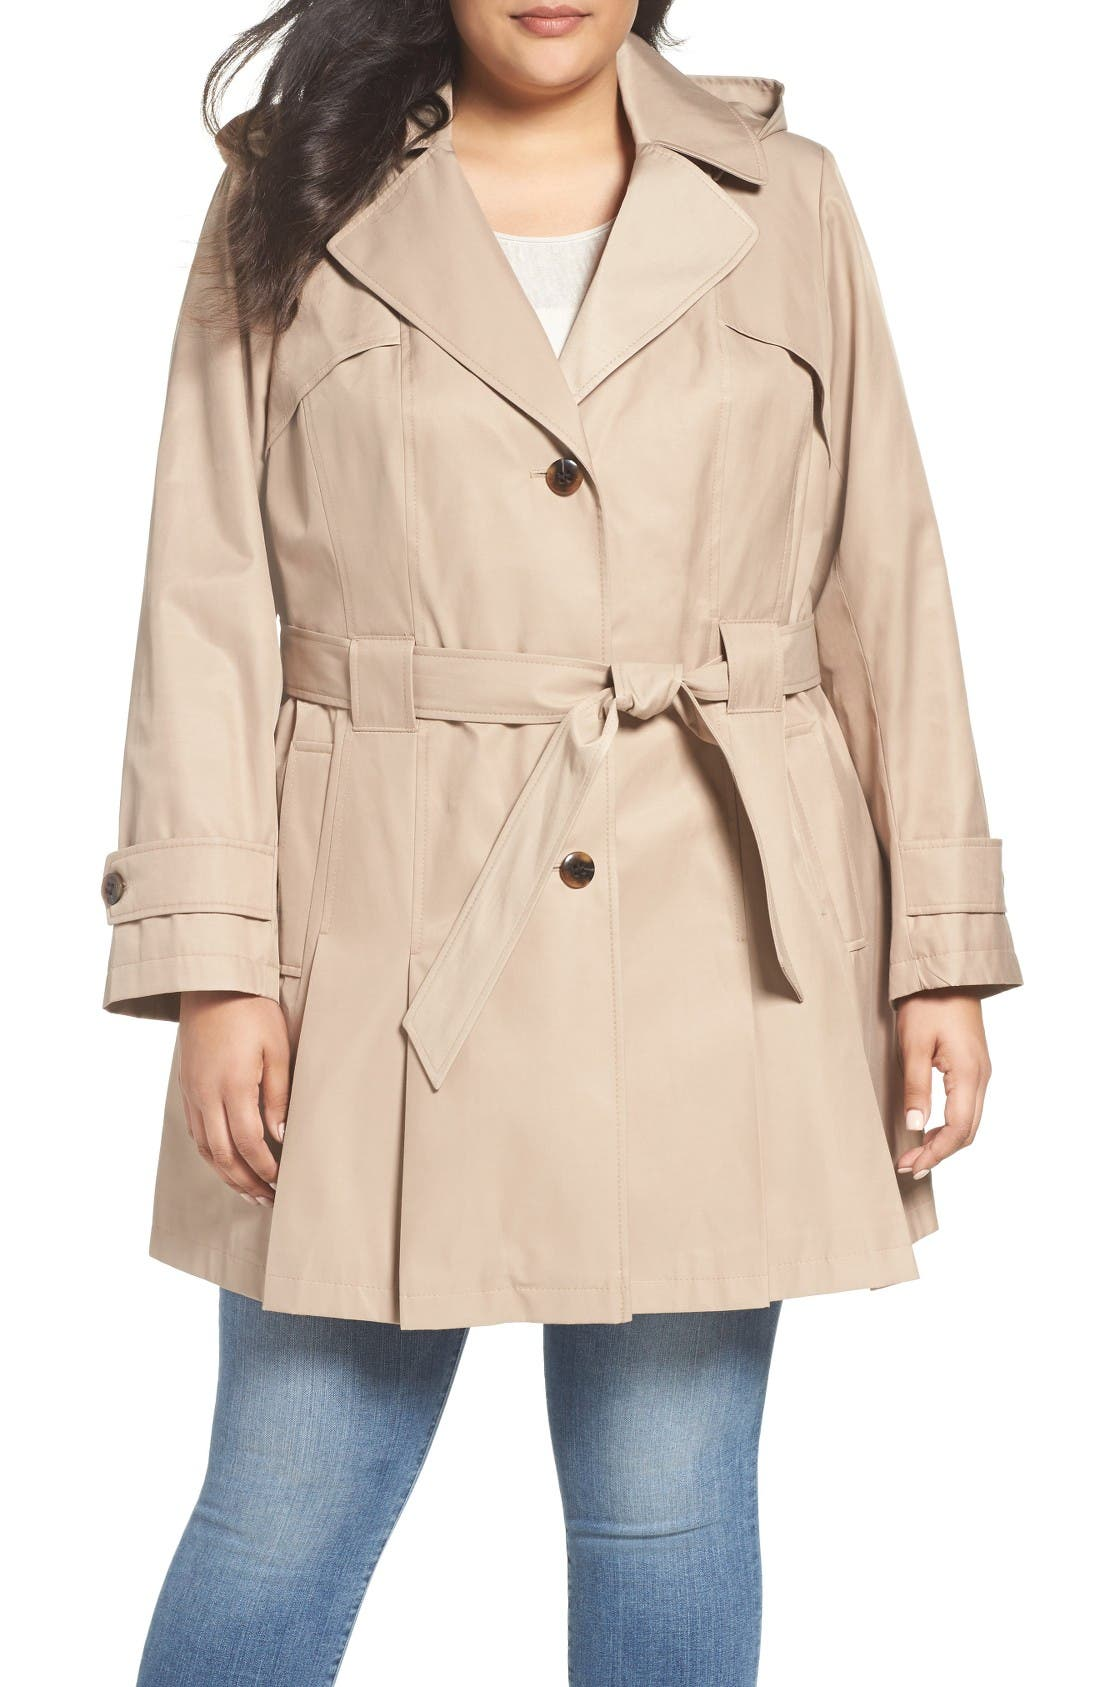 'Scarpa' Single Breasted Trench Coat,                         Main,                         color, New Sand